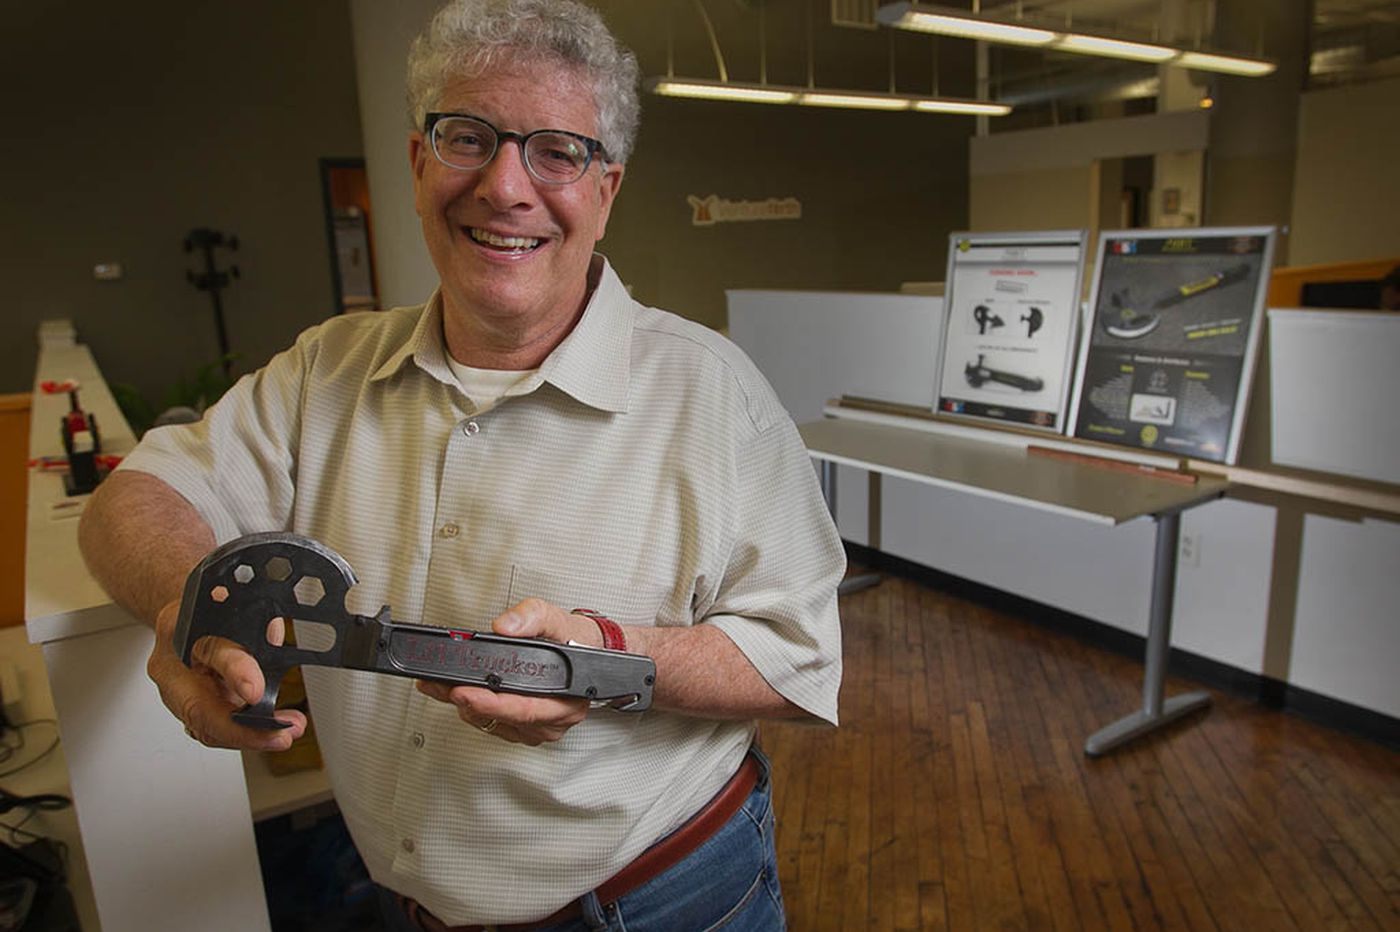 Inventor uses Kickstarter and Zombies to push project